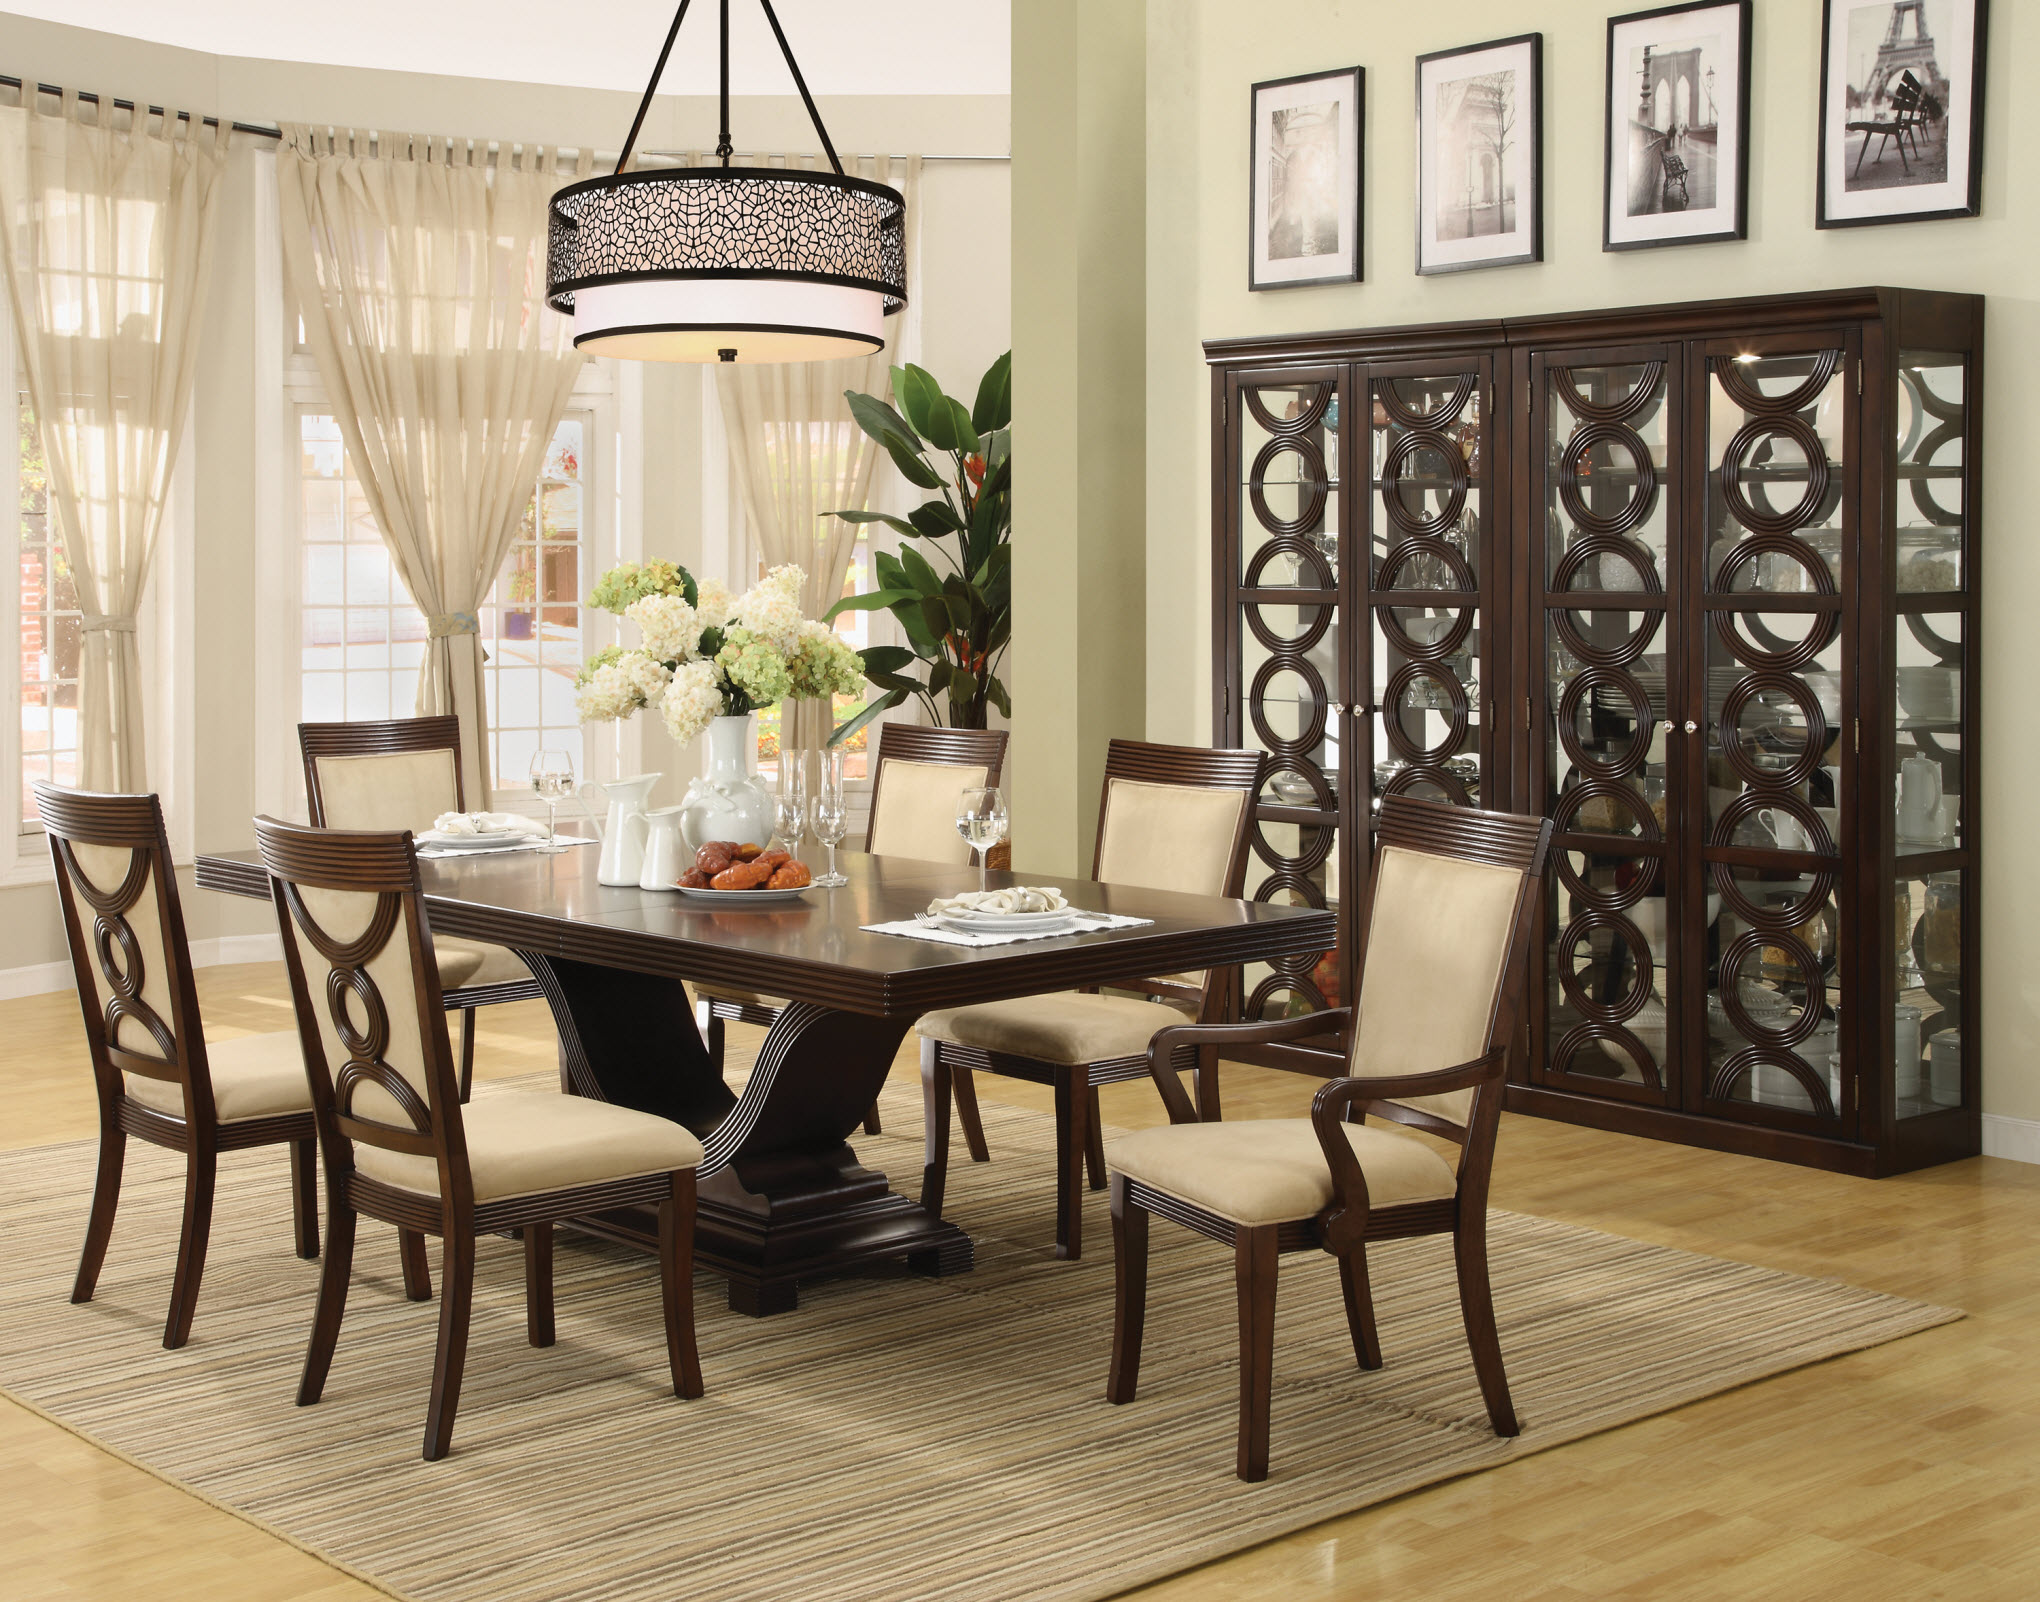 Decorating Small Dining Room. Dining Room Chairs Decorating Small S